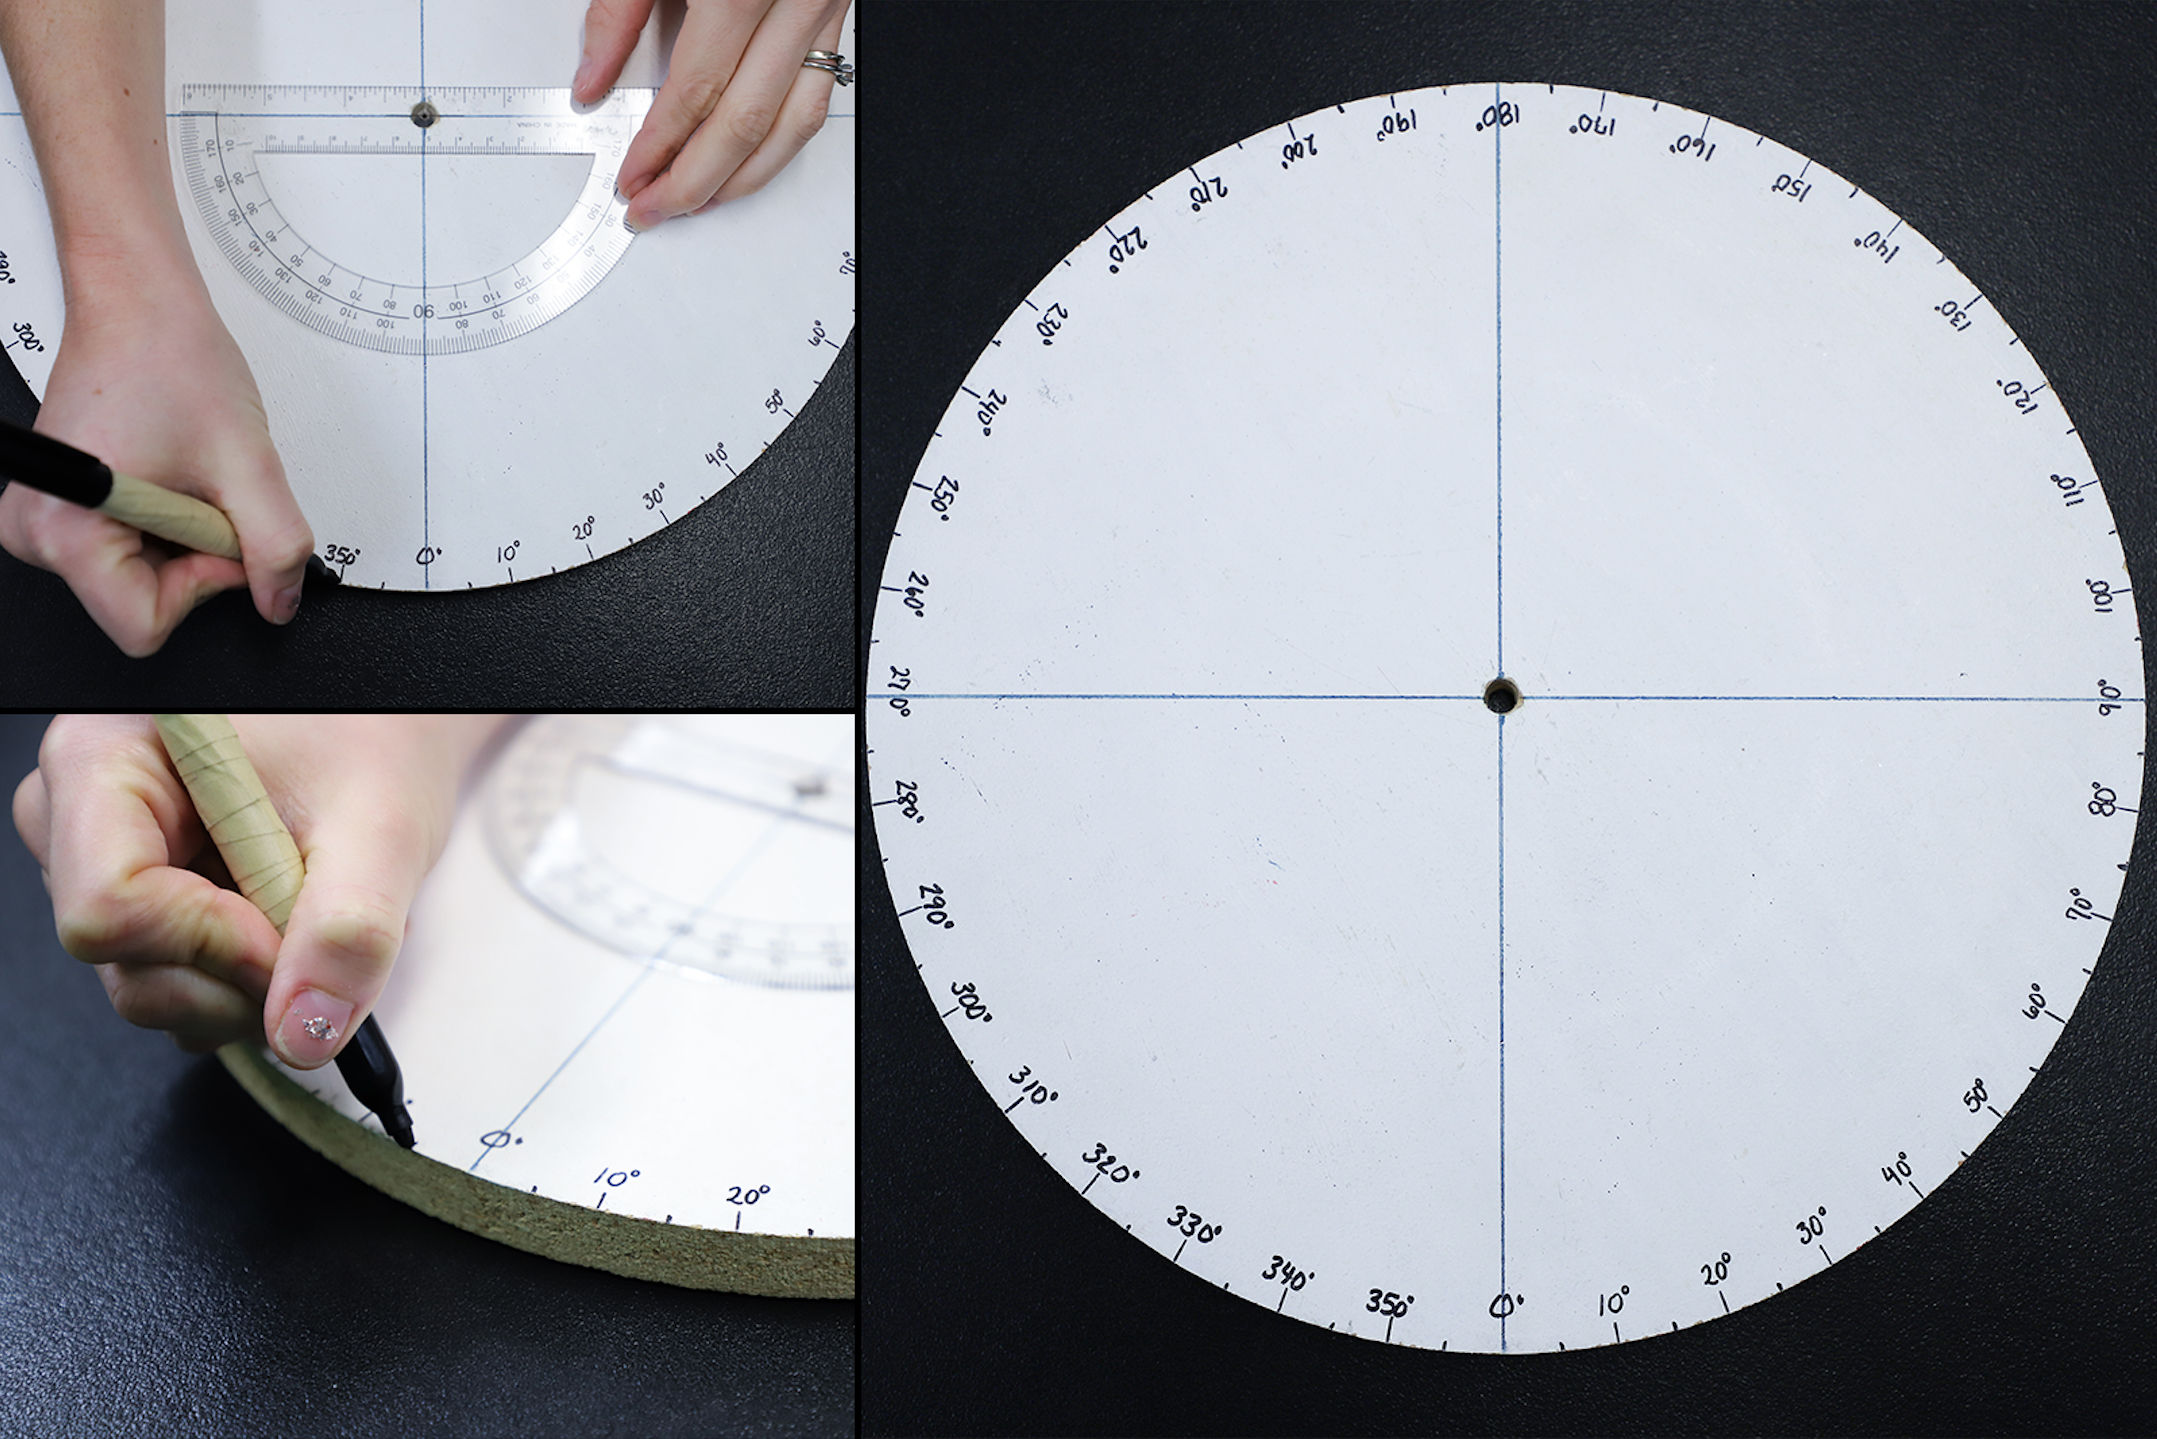 Collage of images showing the calibrated scale being made